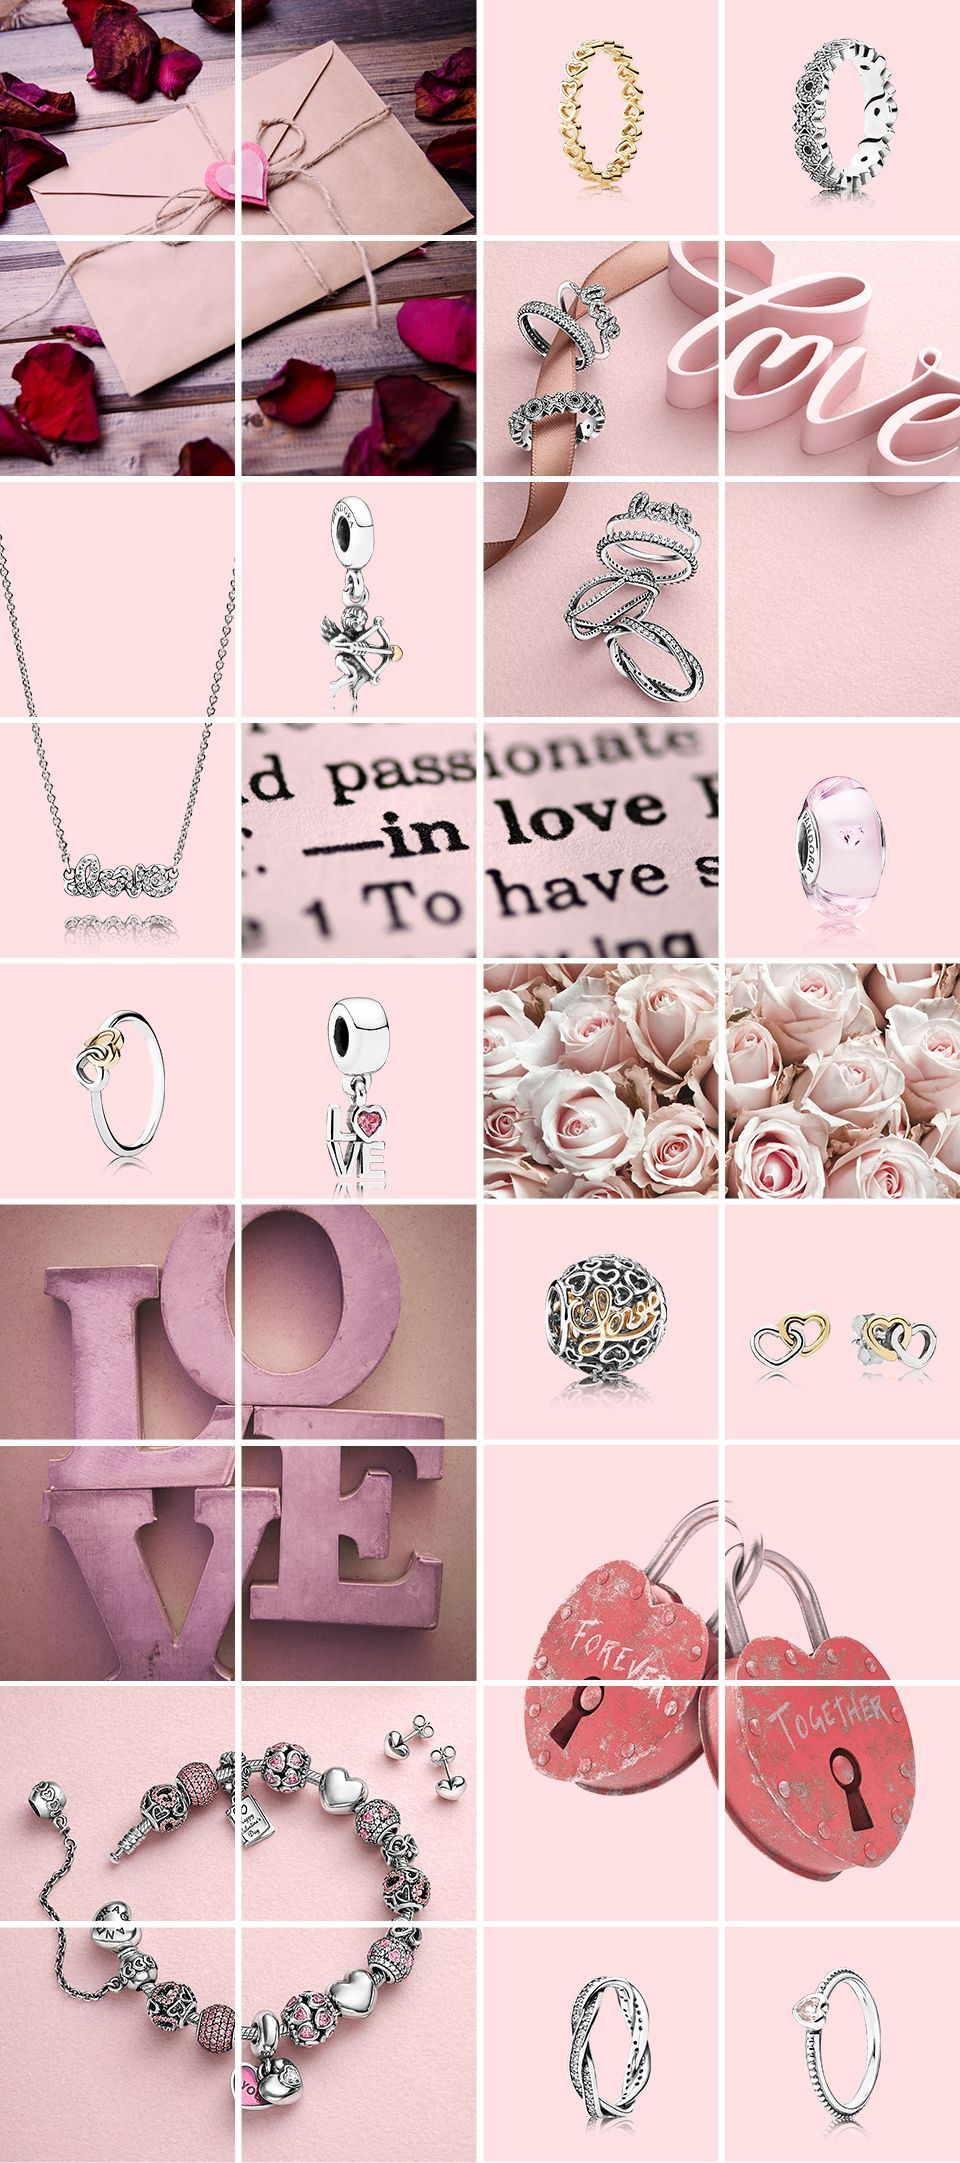 Pandora Jewelry 60% OFF!> VALENTINE'S DAY PREVIEW | PANDORA Call 208-323-5988 to order yours today! Visit www.jewelrymoment... for our blog and more Pandora Jewelry! #Jewelry #PANDORA #style #Accessories #shopping #styles #outfit #pretty #girl #girls #beauty #beautiful #me #cute #stylish #design #fashion #outfits #PANDORAbracelets #PANDORAcharm